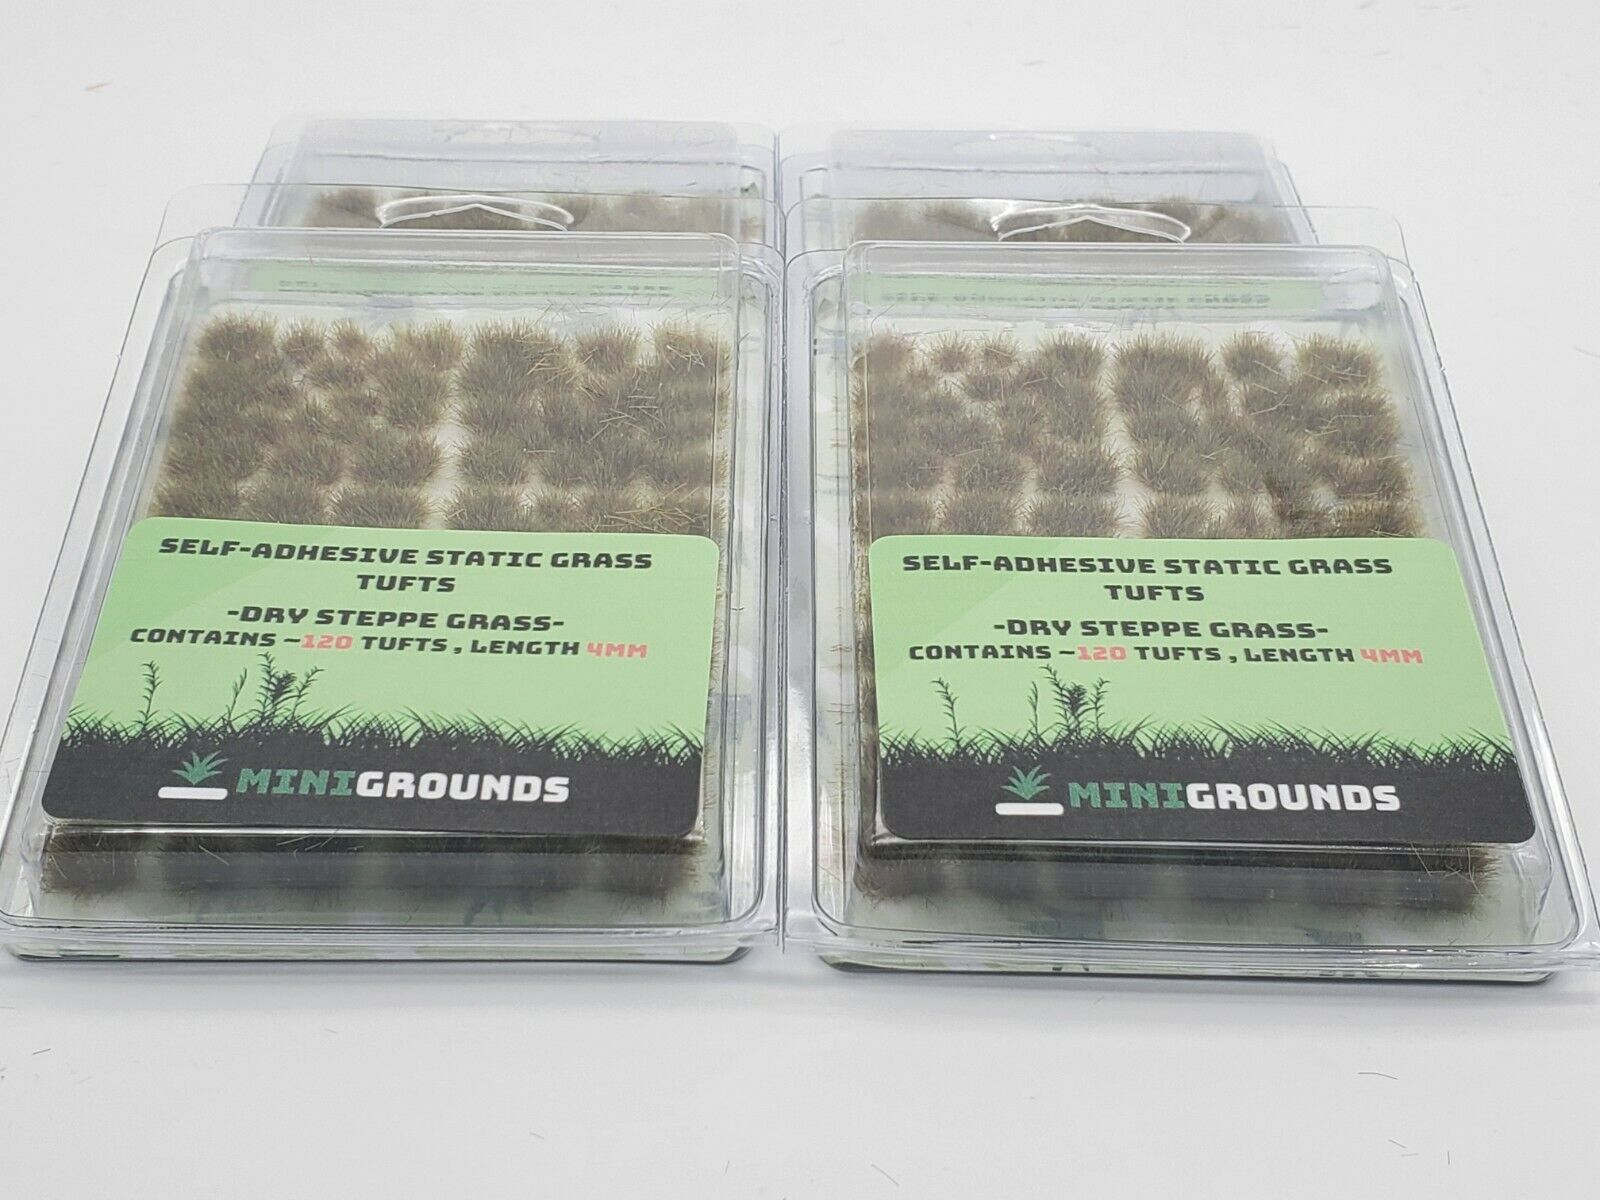 Self Adhesive Static Grass Tufts- Miniature Scenery/Terrain-Dry Steppe Grass  1